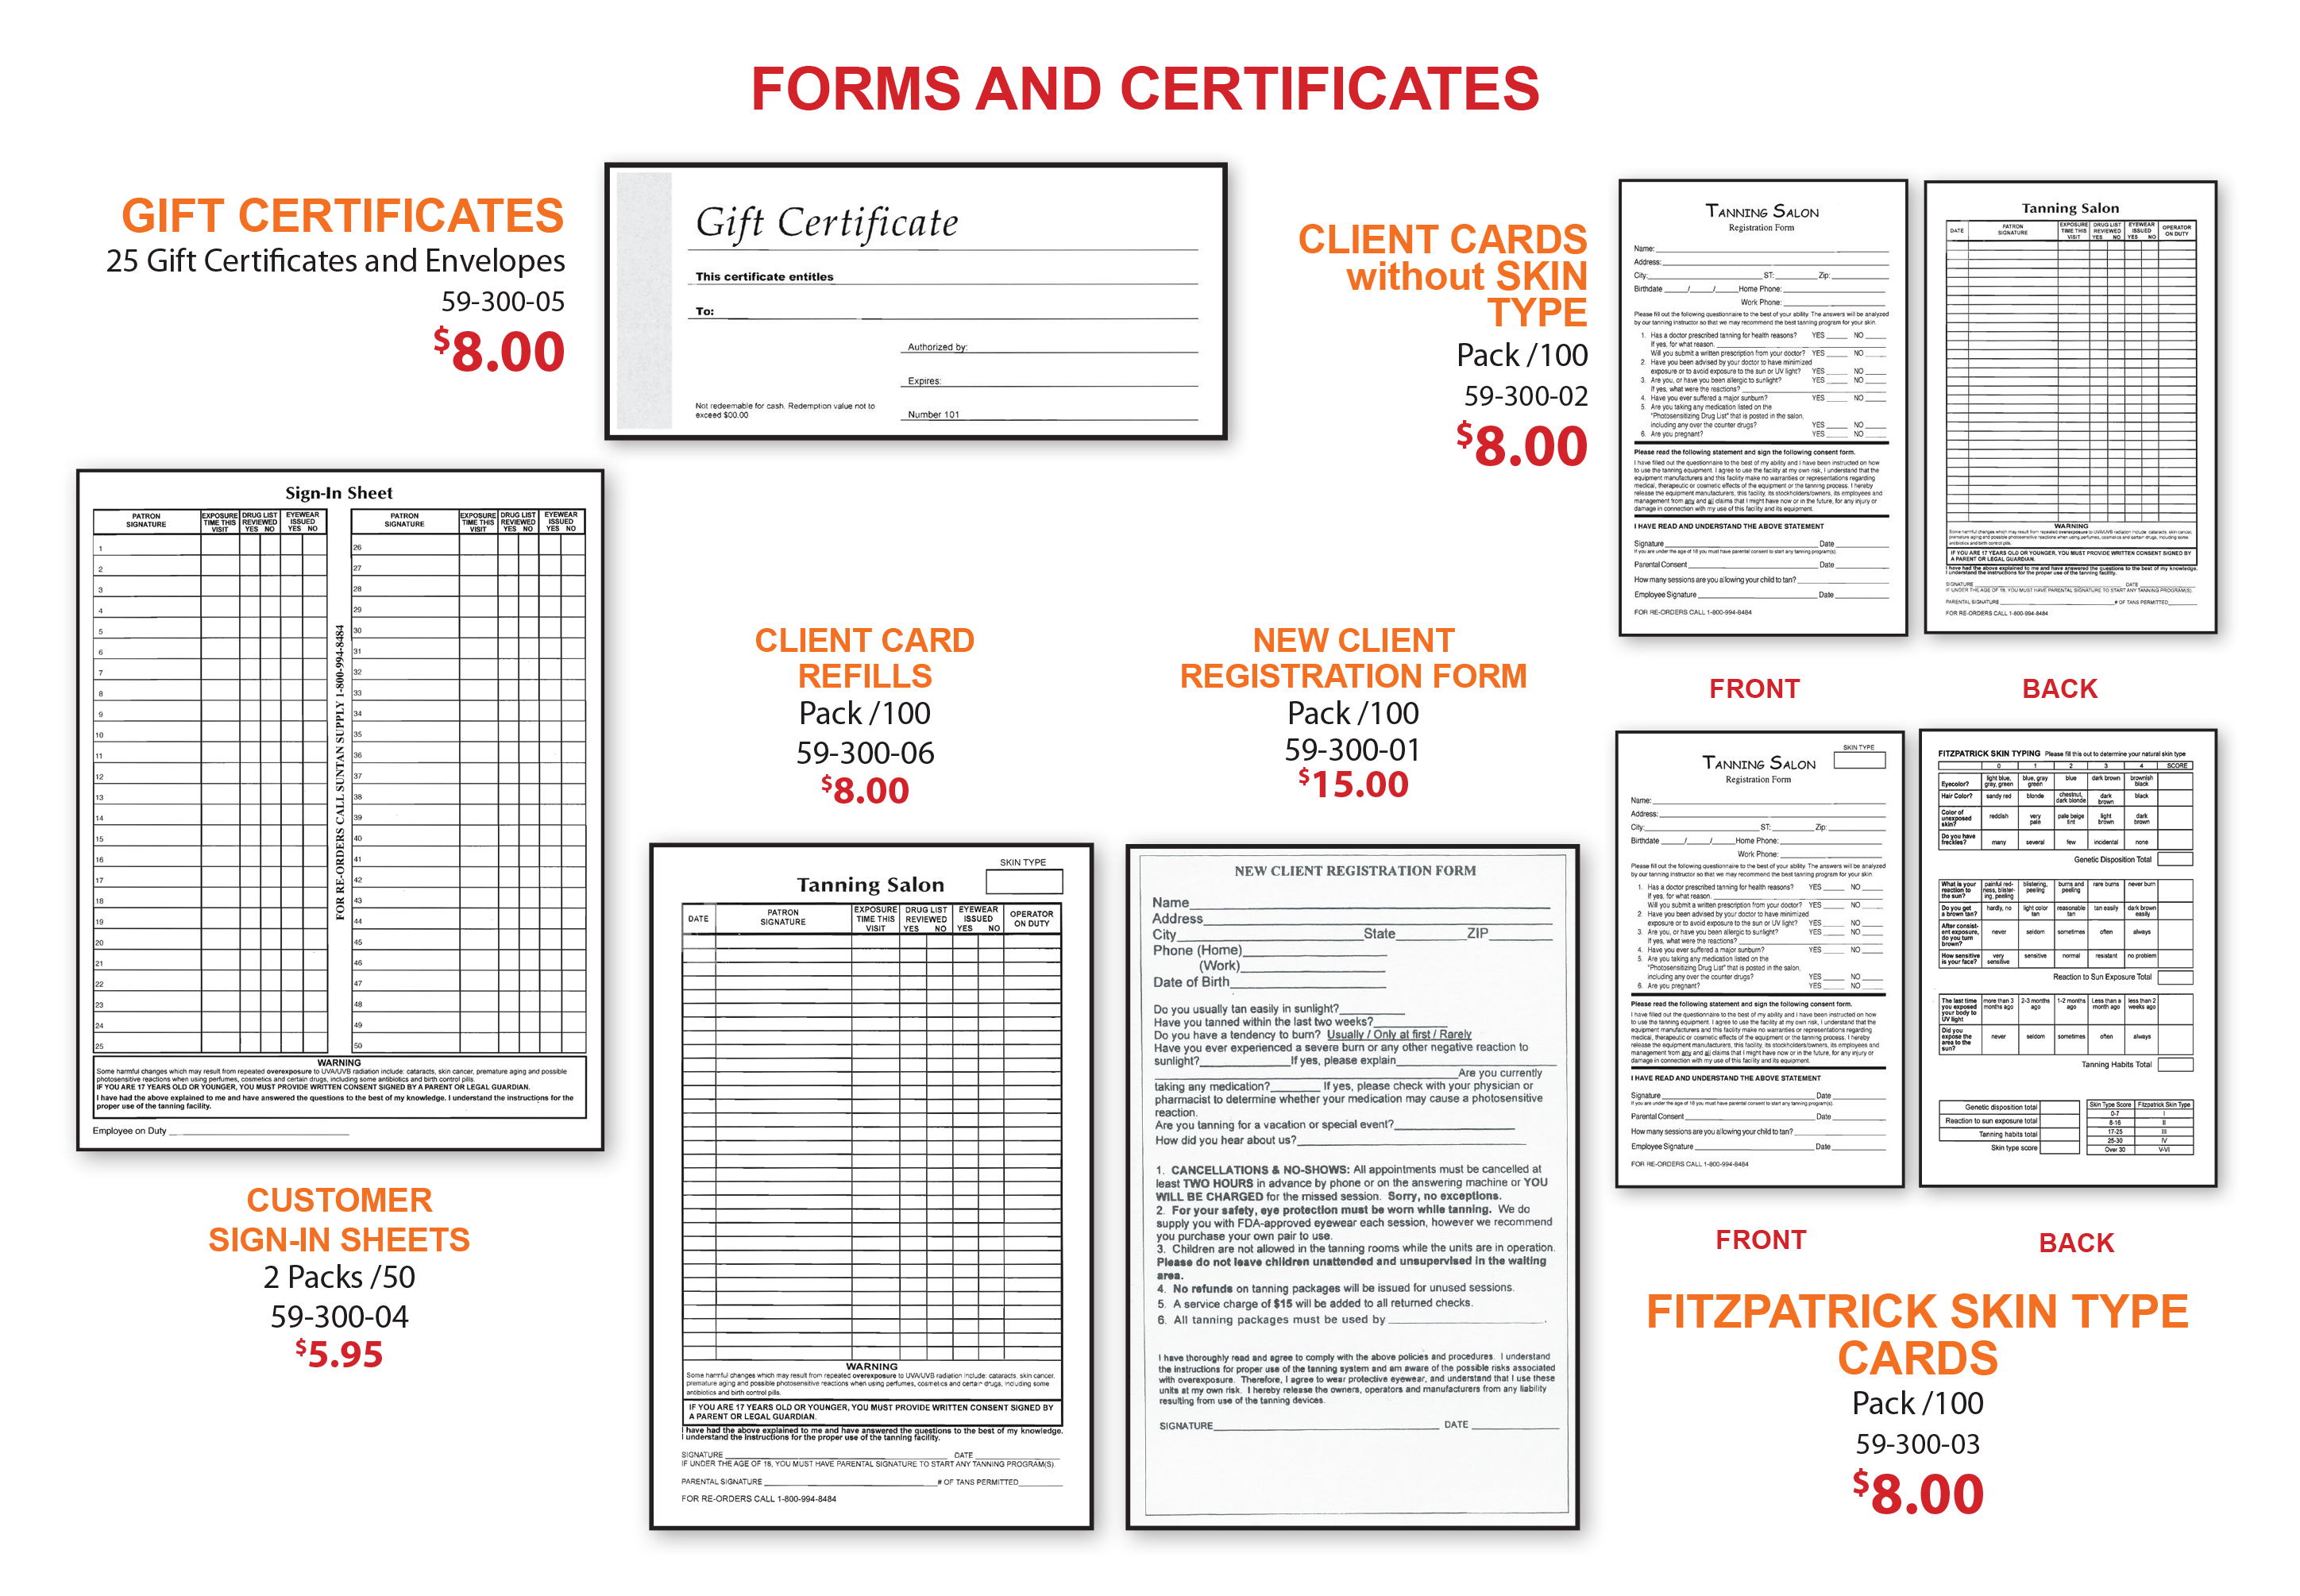 tanning salon forms and certificates